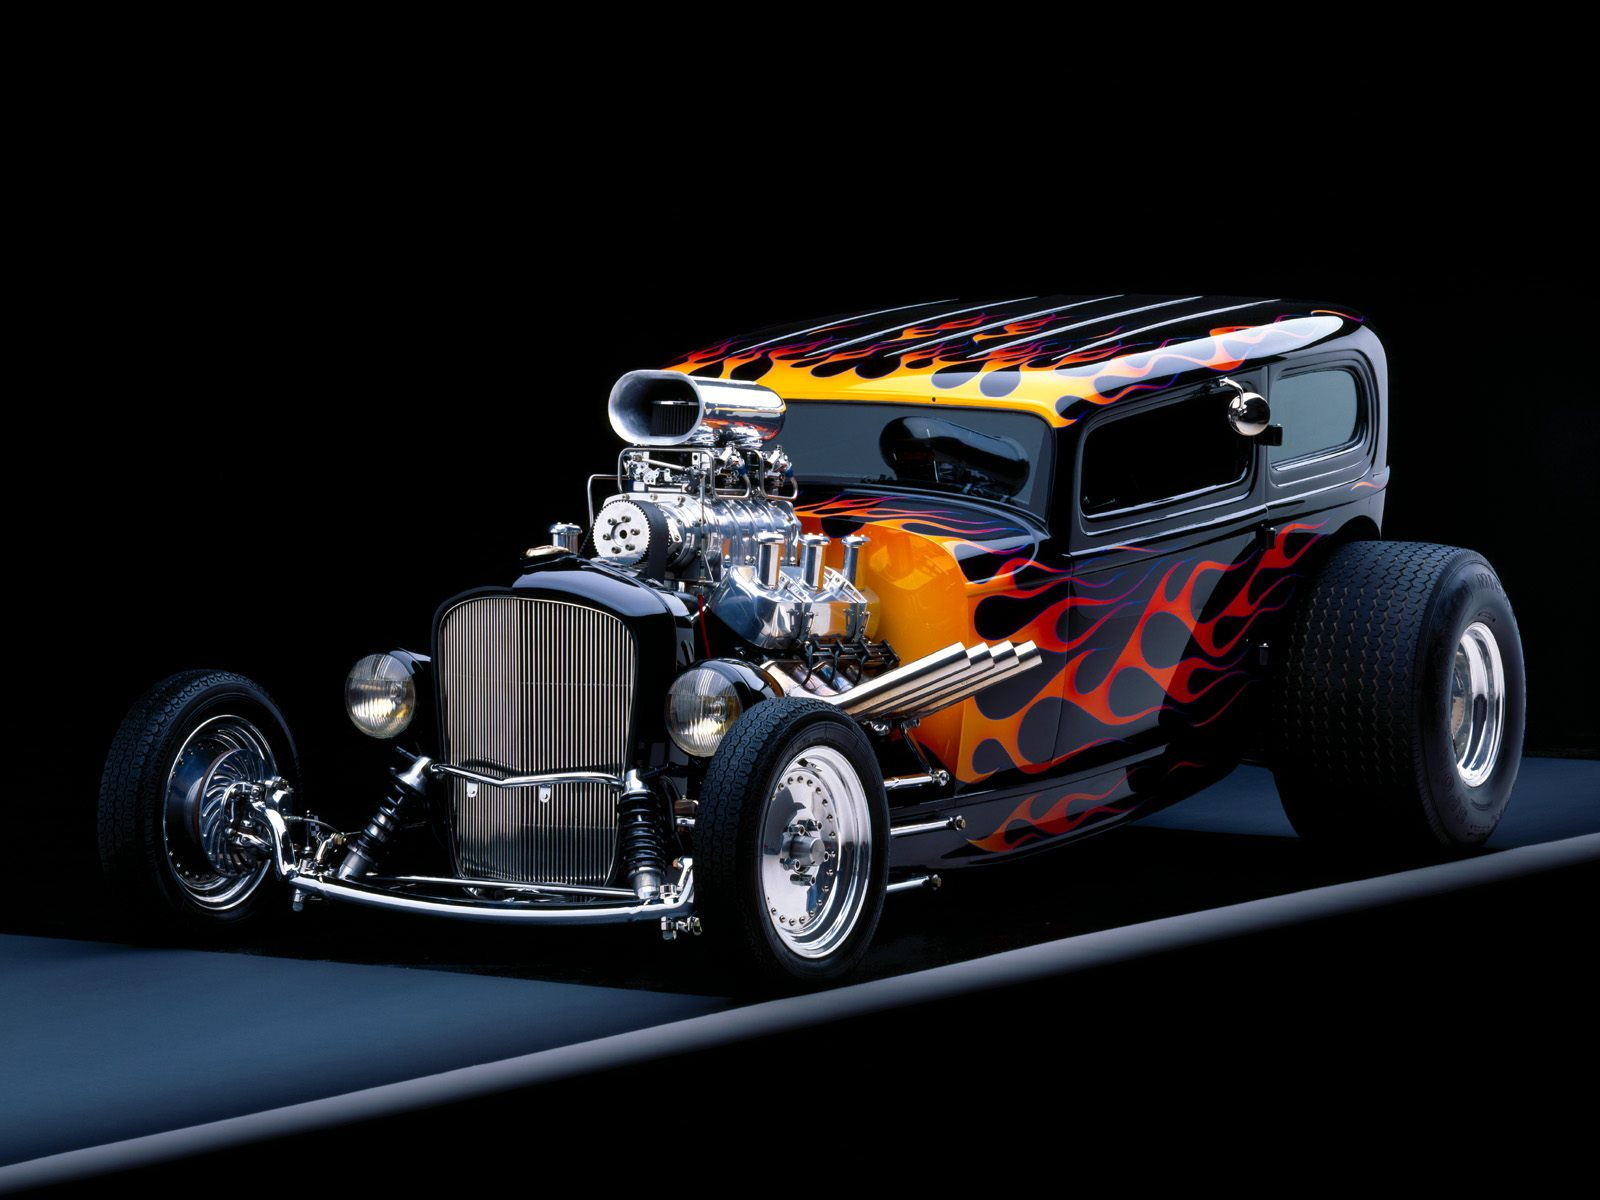 HD Wallpapers Of Cars - A